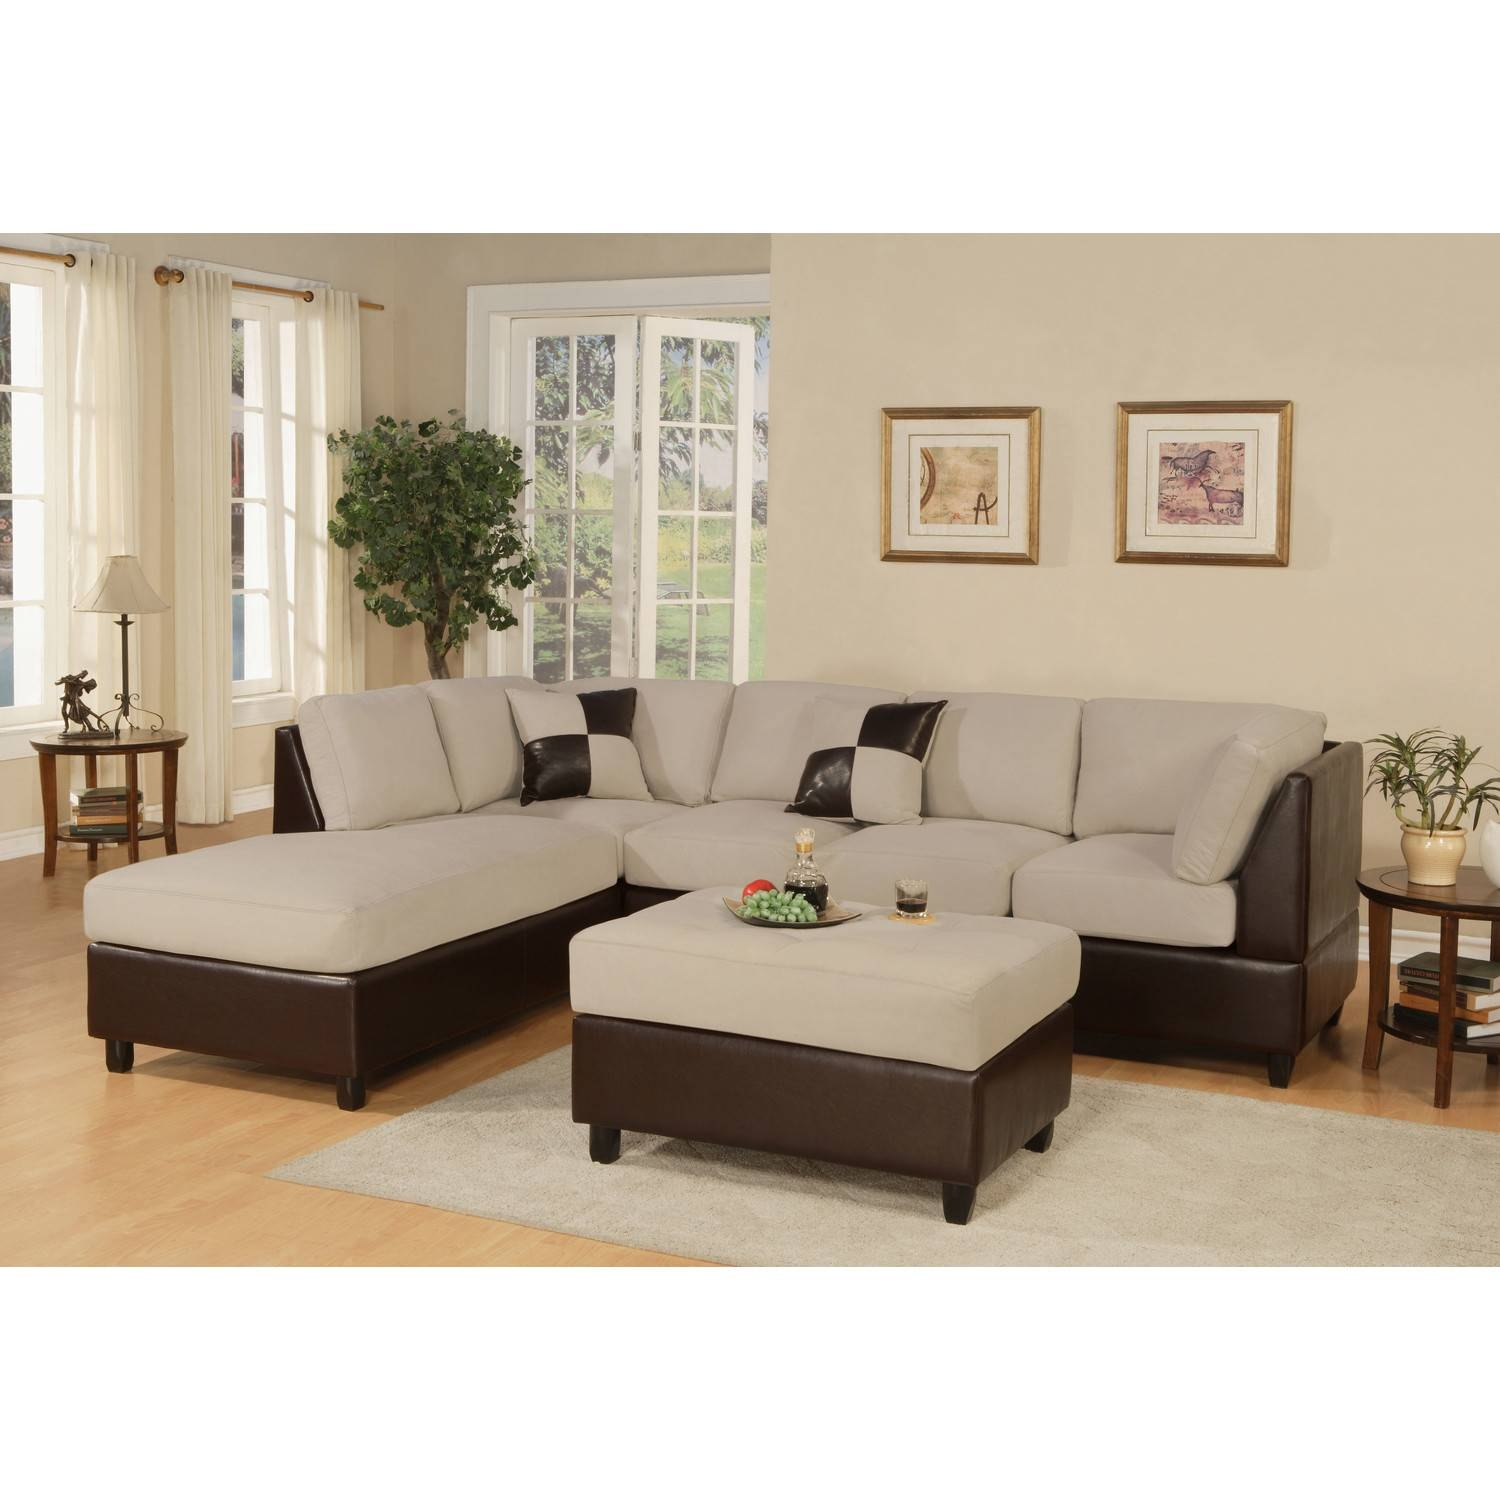 Furniture: Comfortable Modular Sectional Sofa For Modern Living pertaining to Coffee Table for Sectional Sofa With Chaise (Image 12 of 30)